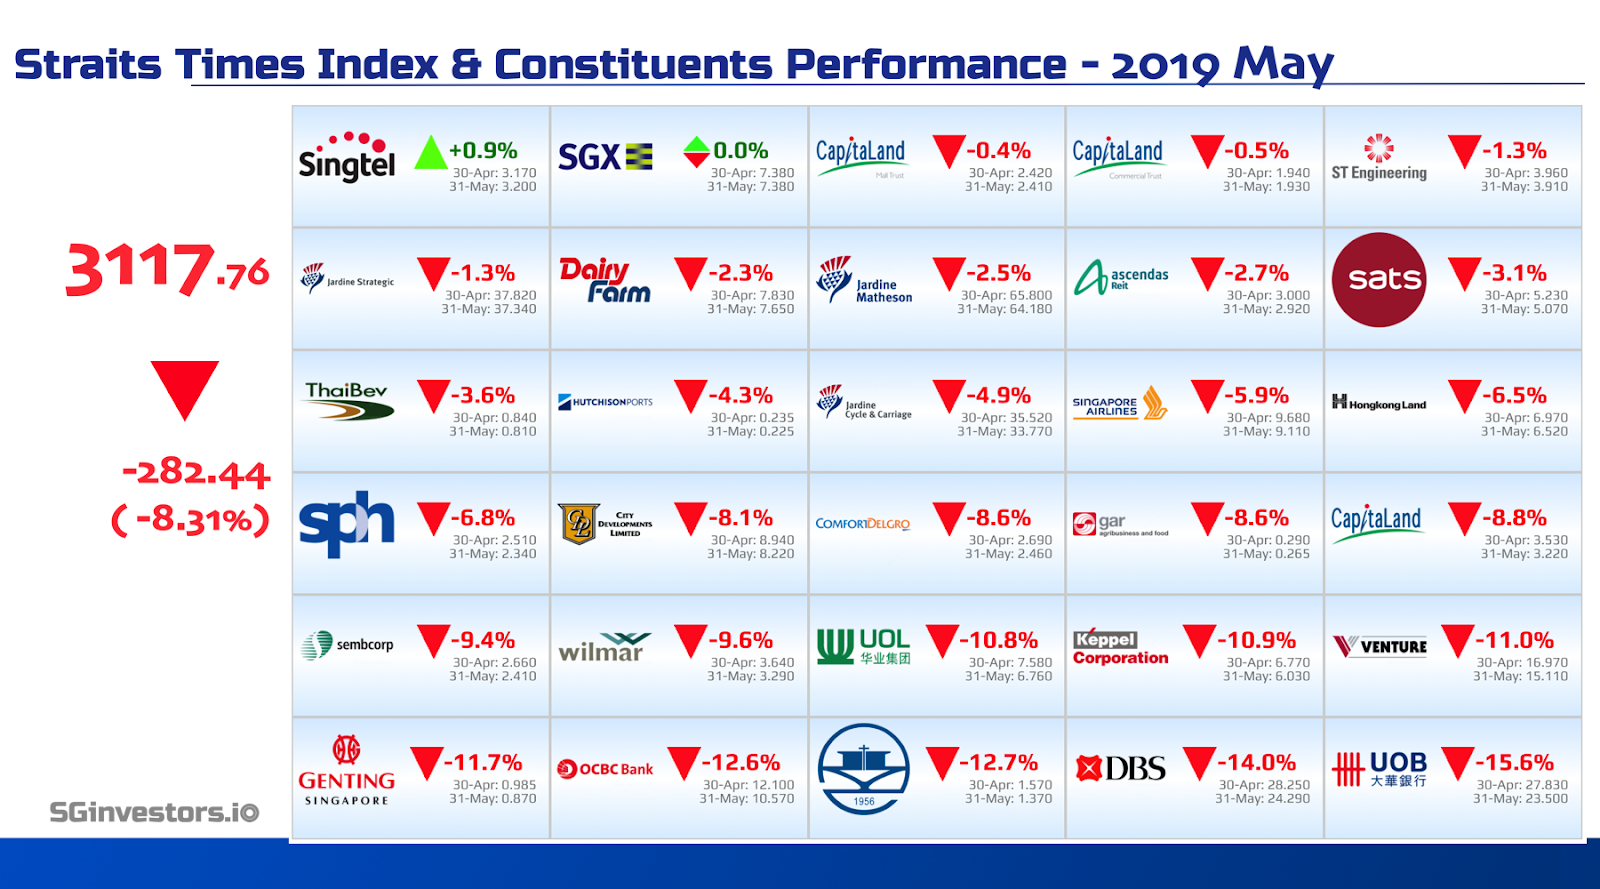 Performance of Straits Times Index (STI) Constituents in May 2019